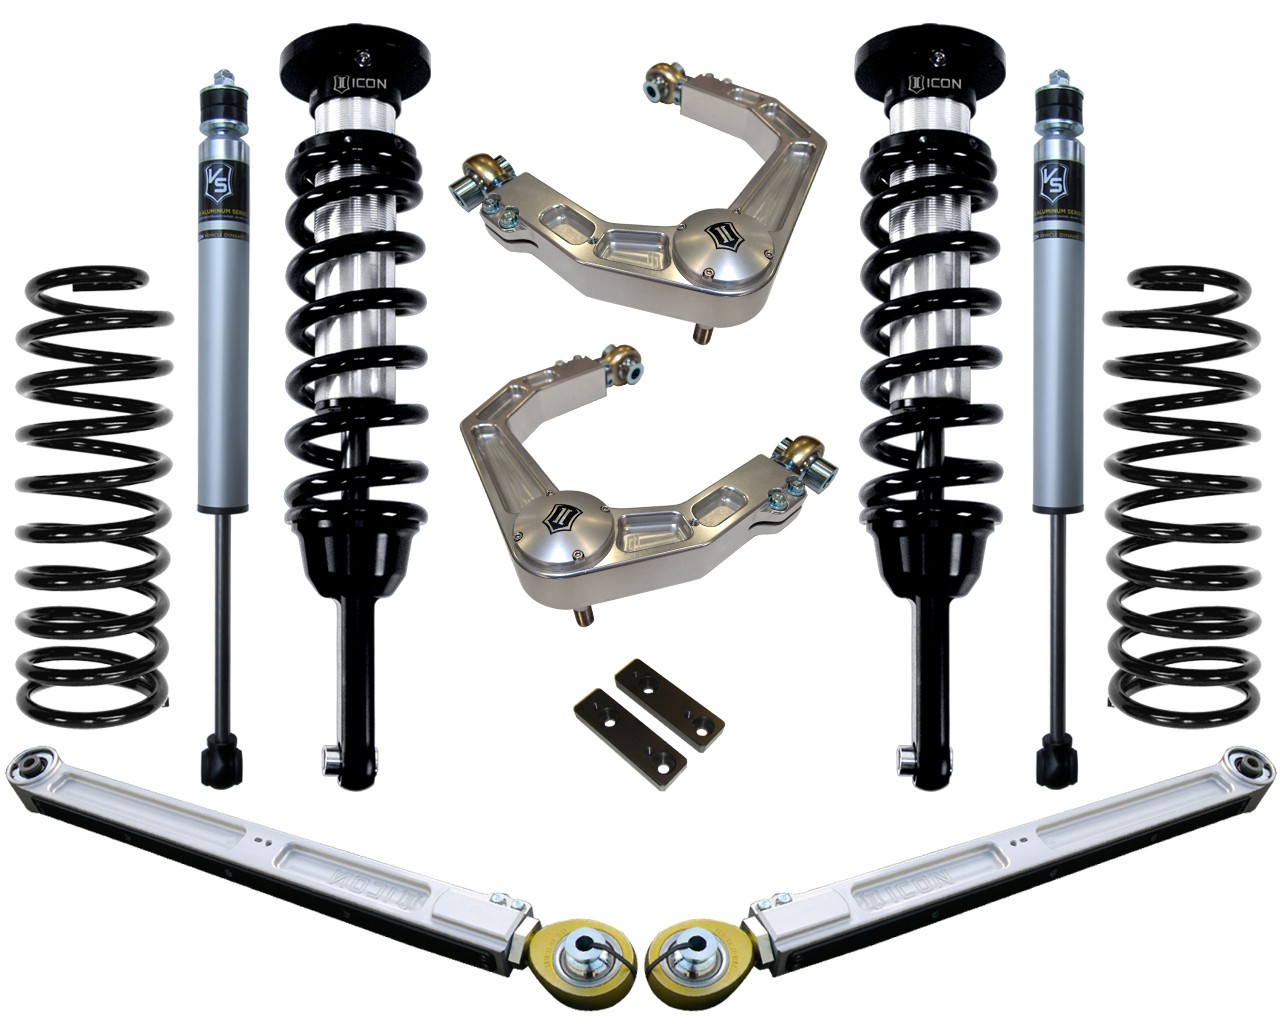 2010 - 2014 FJ Cruiser Suspension System - Stage 3